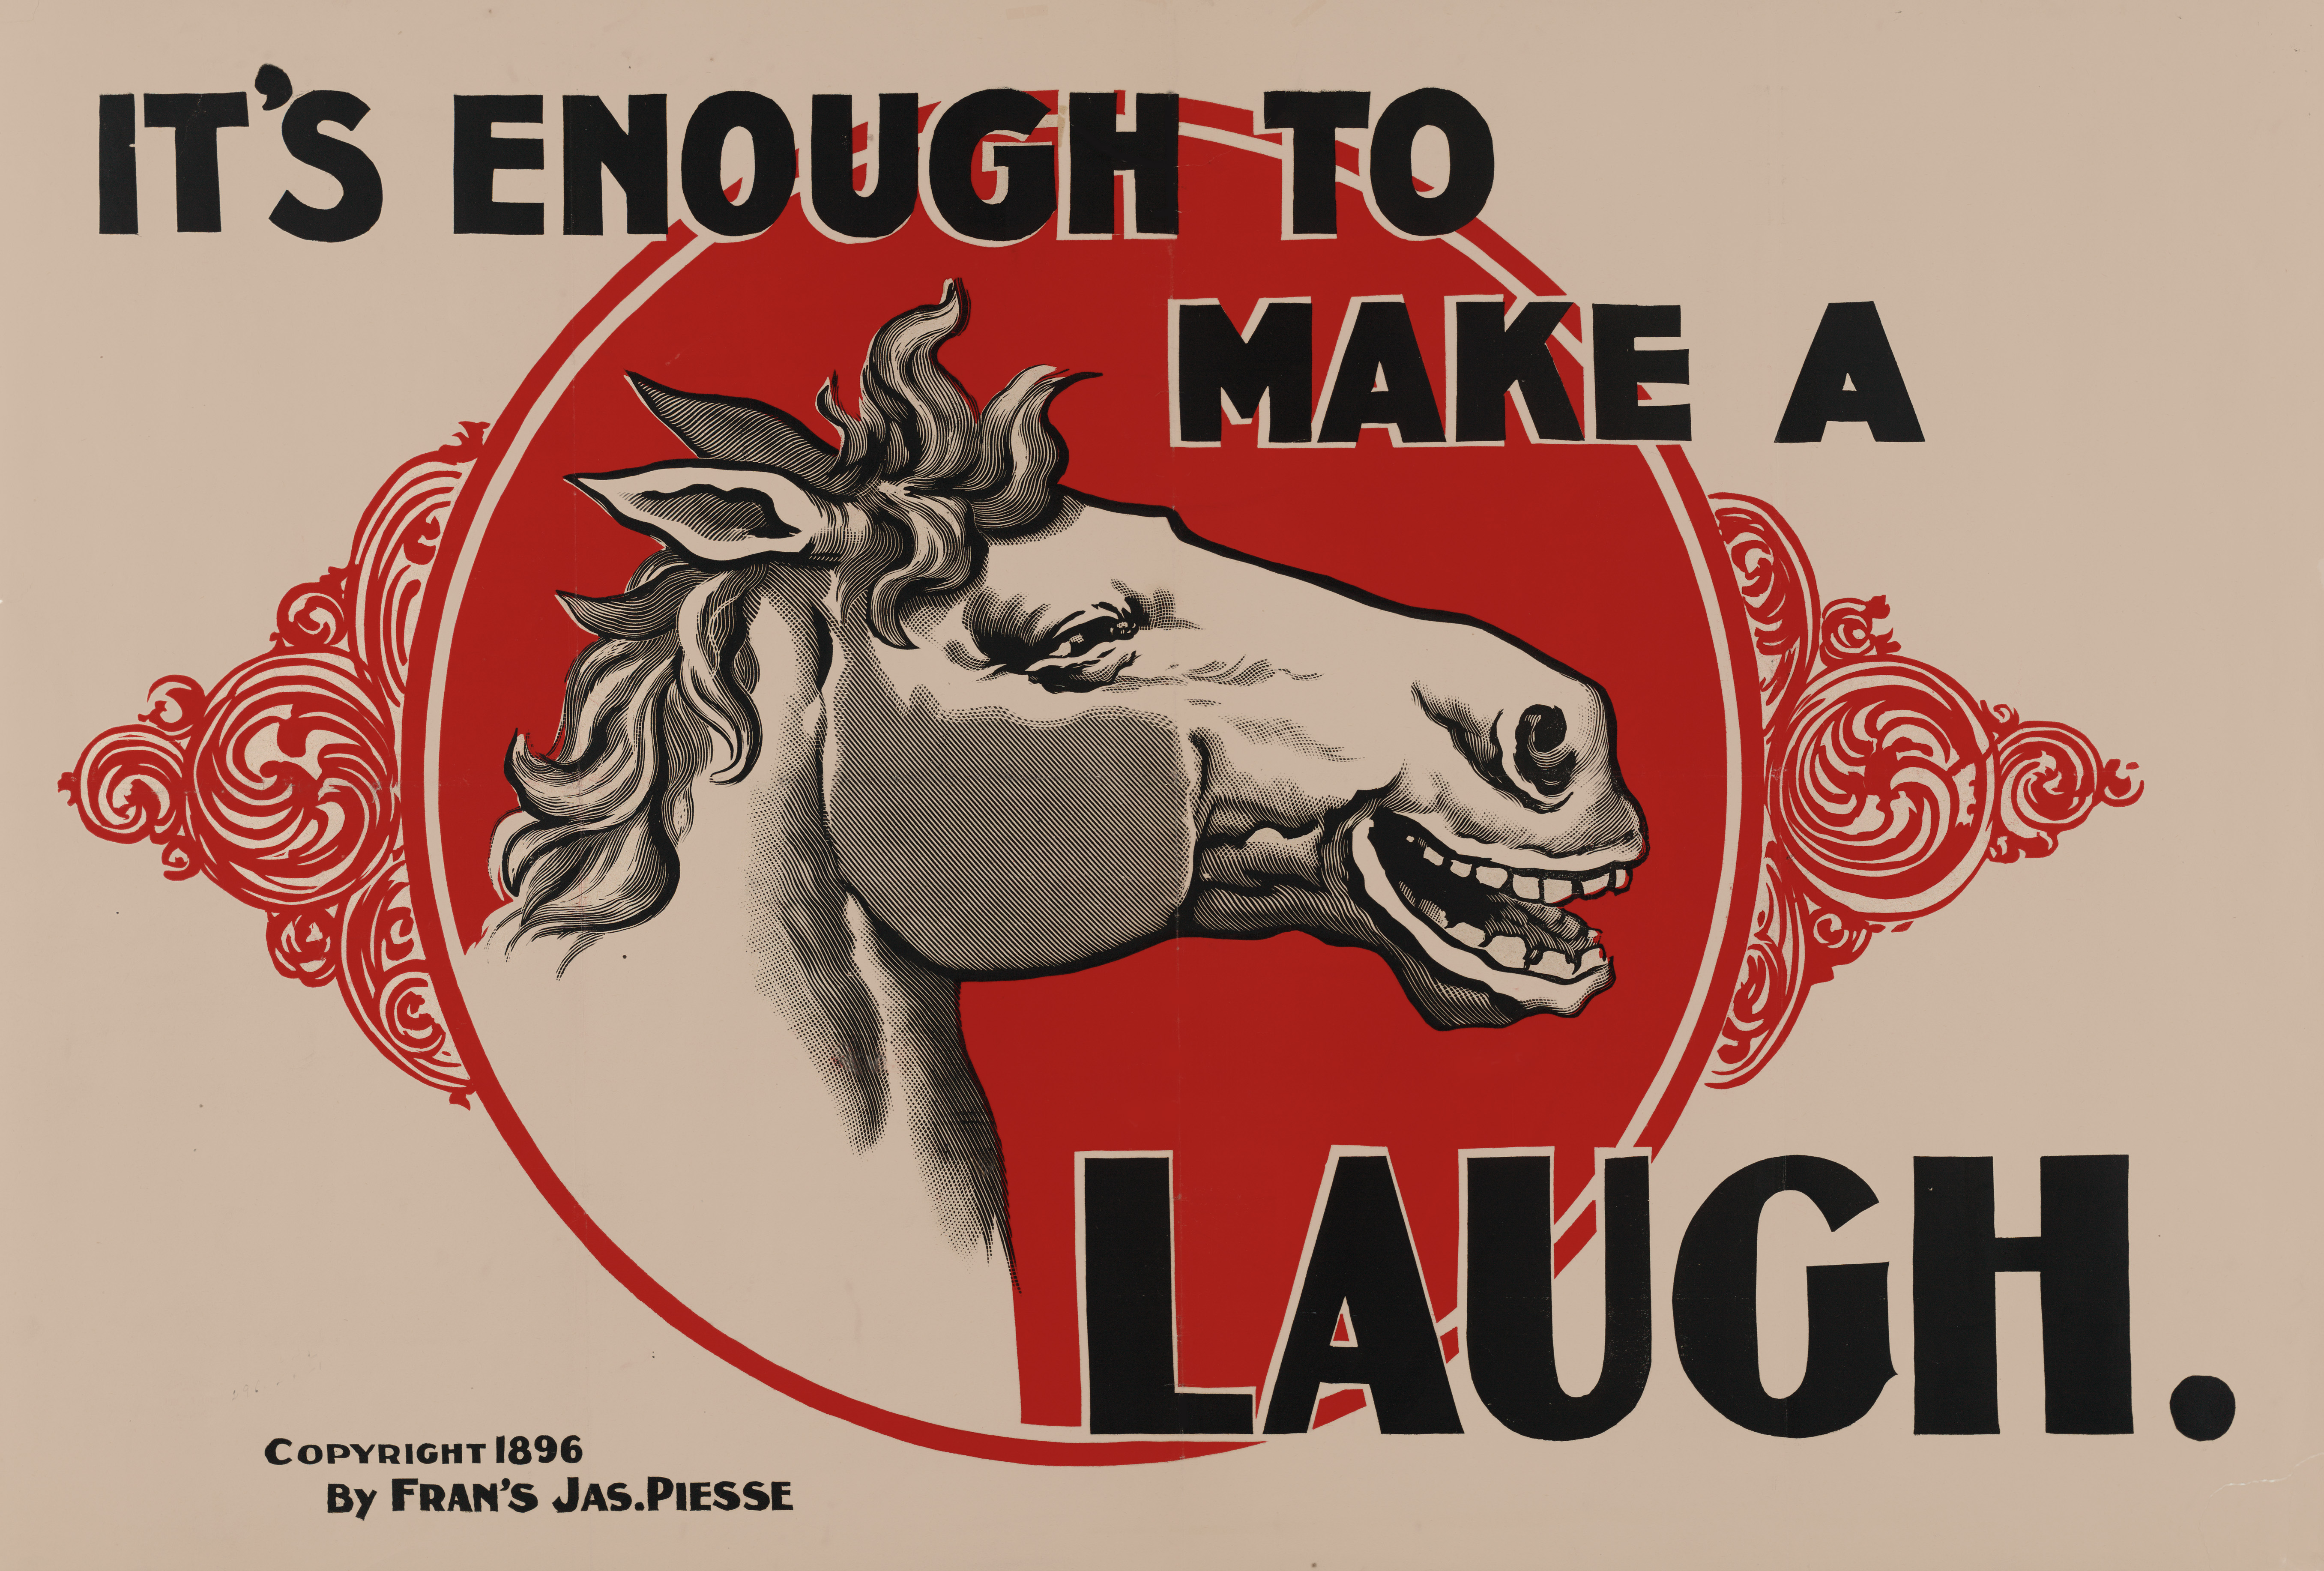 http://upload.wikimedia.org/wikipedia/commons/1/14/It%27s_enough_to_make_a_horse_laugh%2C_1896.jpg